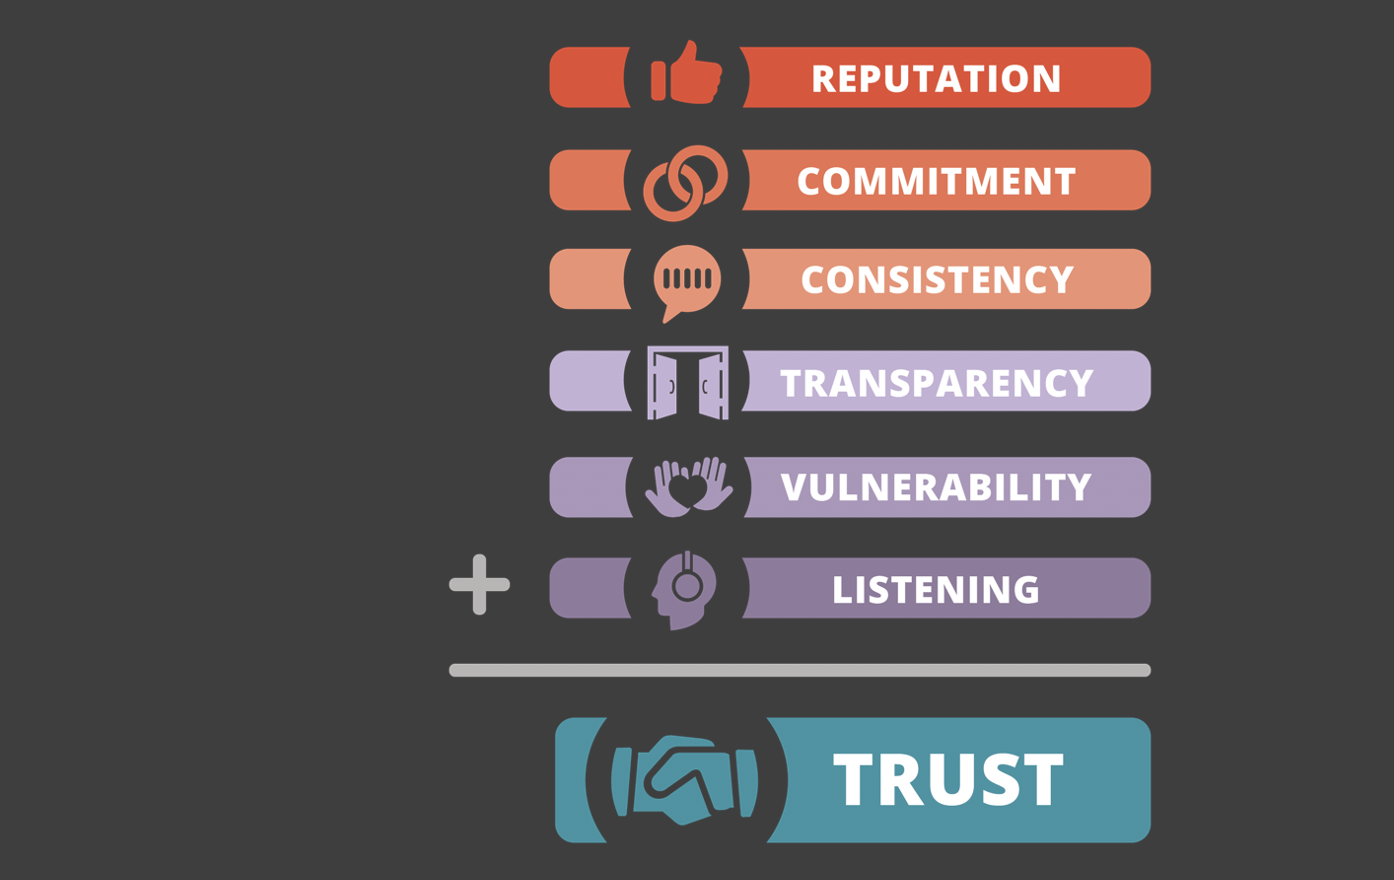 Trust = Reputation + Commitment + Consistency + Transparency + Vulnerability + Listening with logos for each in math format